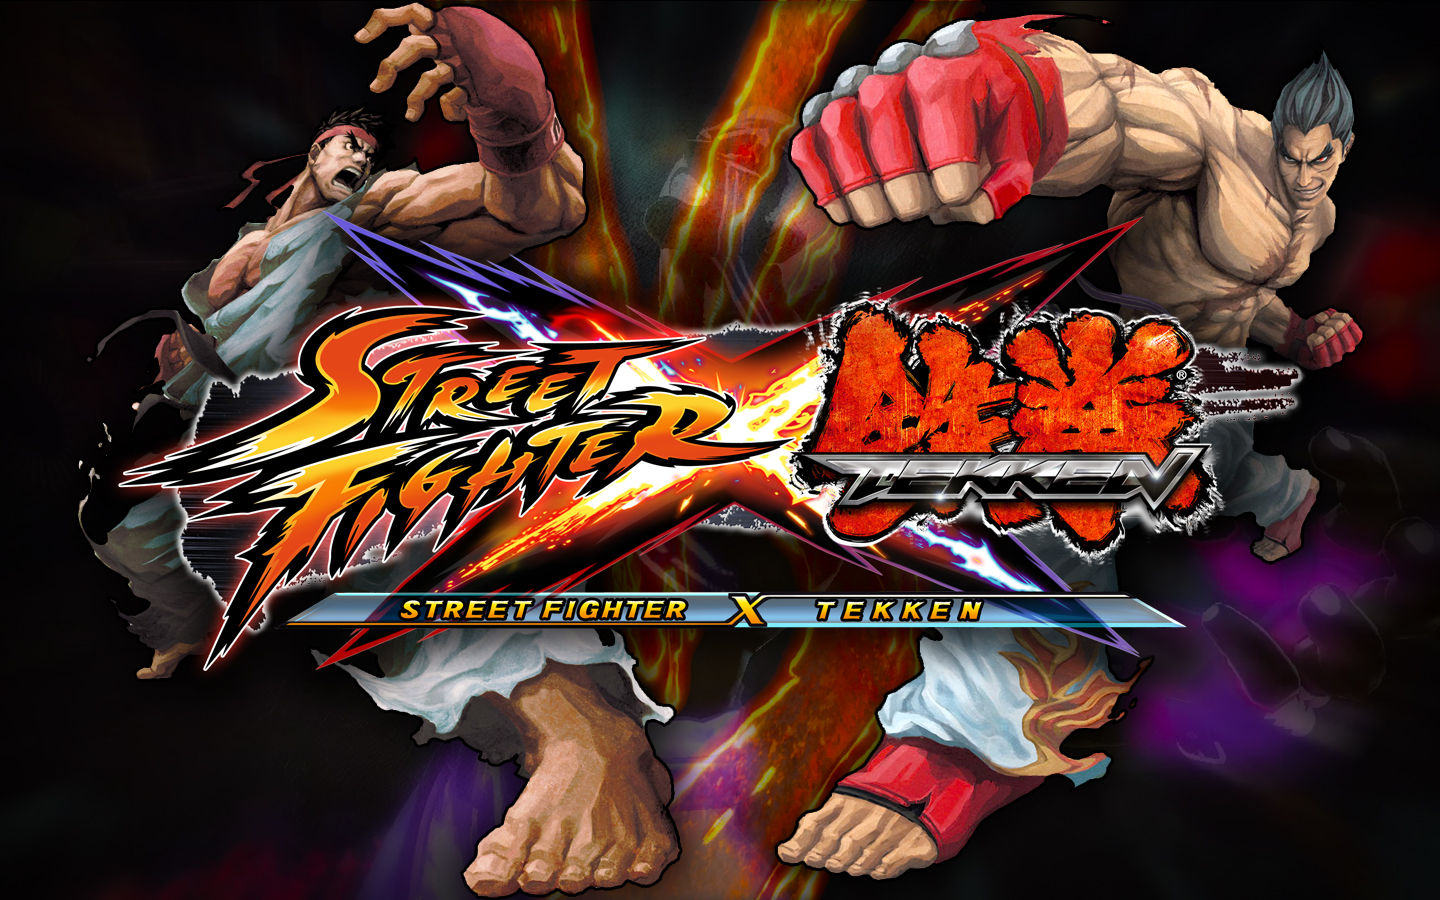 Street Fighter Vs Tekken Wallpaper By Pvlimota On Deviantart